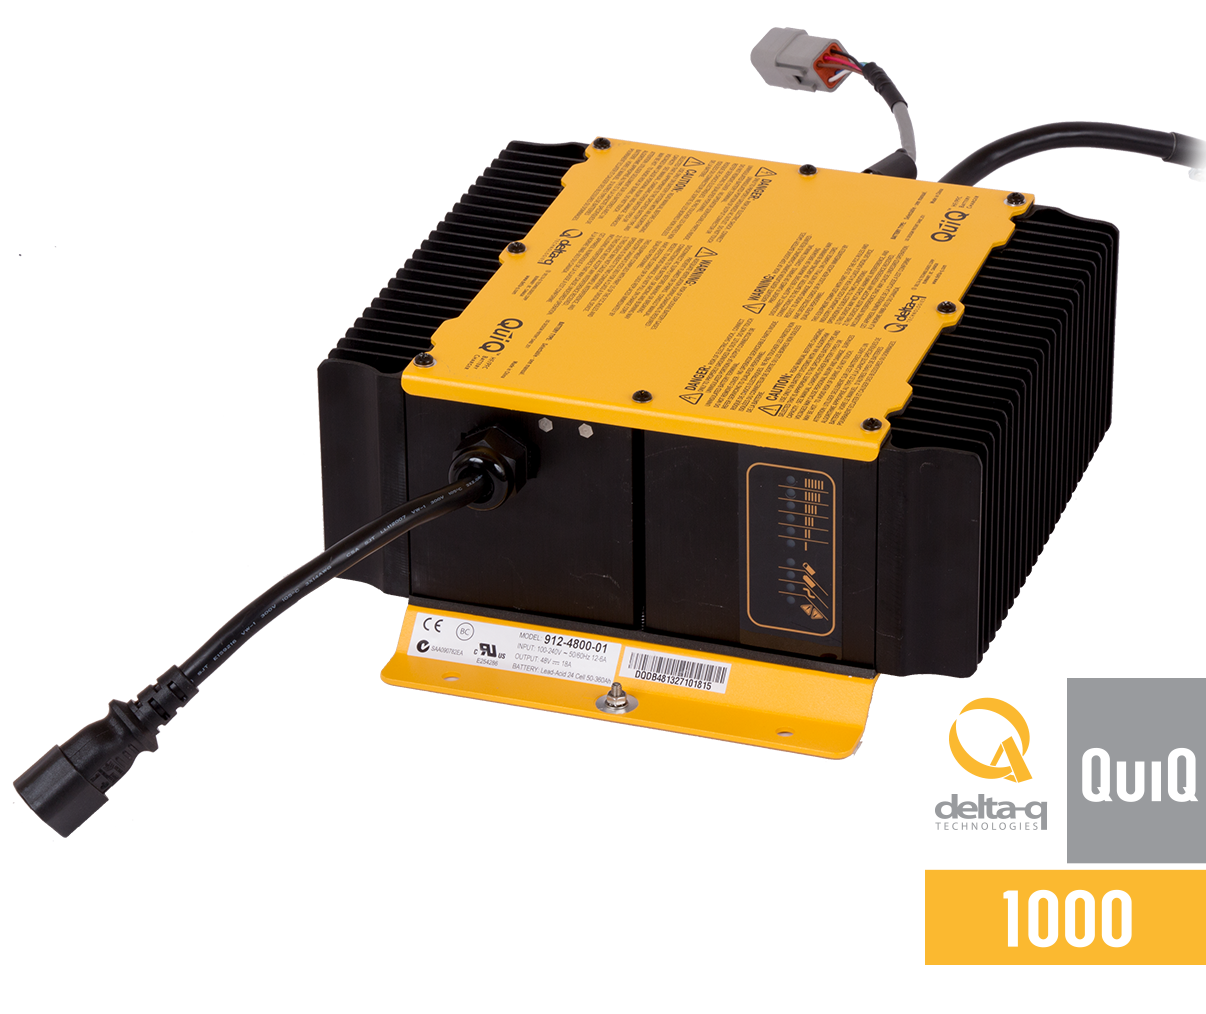 Quiq 1000 Industrial Battery Charger on lead acid battery charger